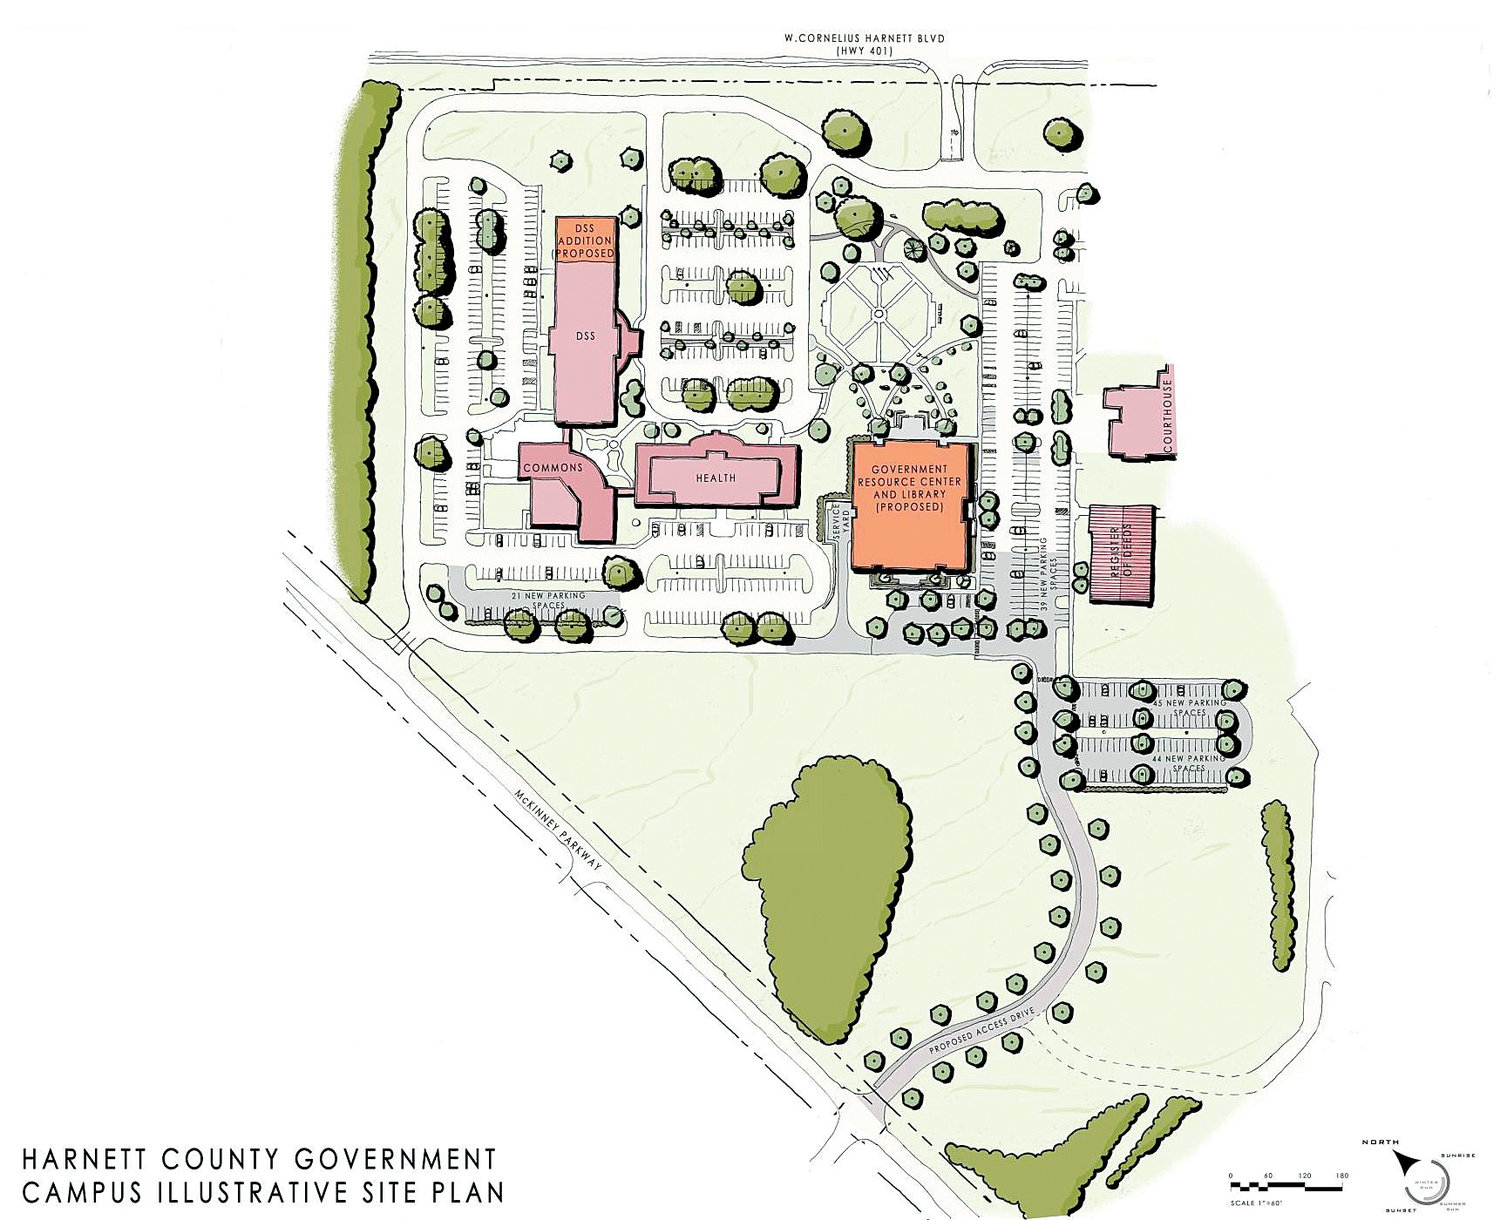 The Harnett County Board of Commissioners is expected to approve increases in the cost of the Harnett County Government Resource Center and Library at their meeting Monday night. Here is an illustrative site plan of the courthouse campus which includes the new building.